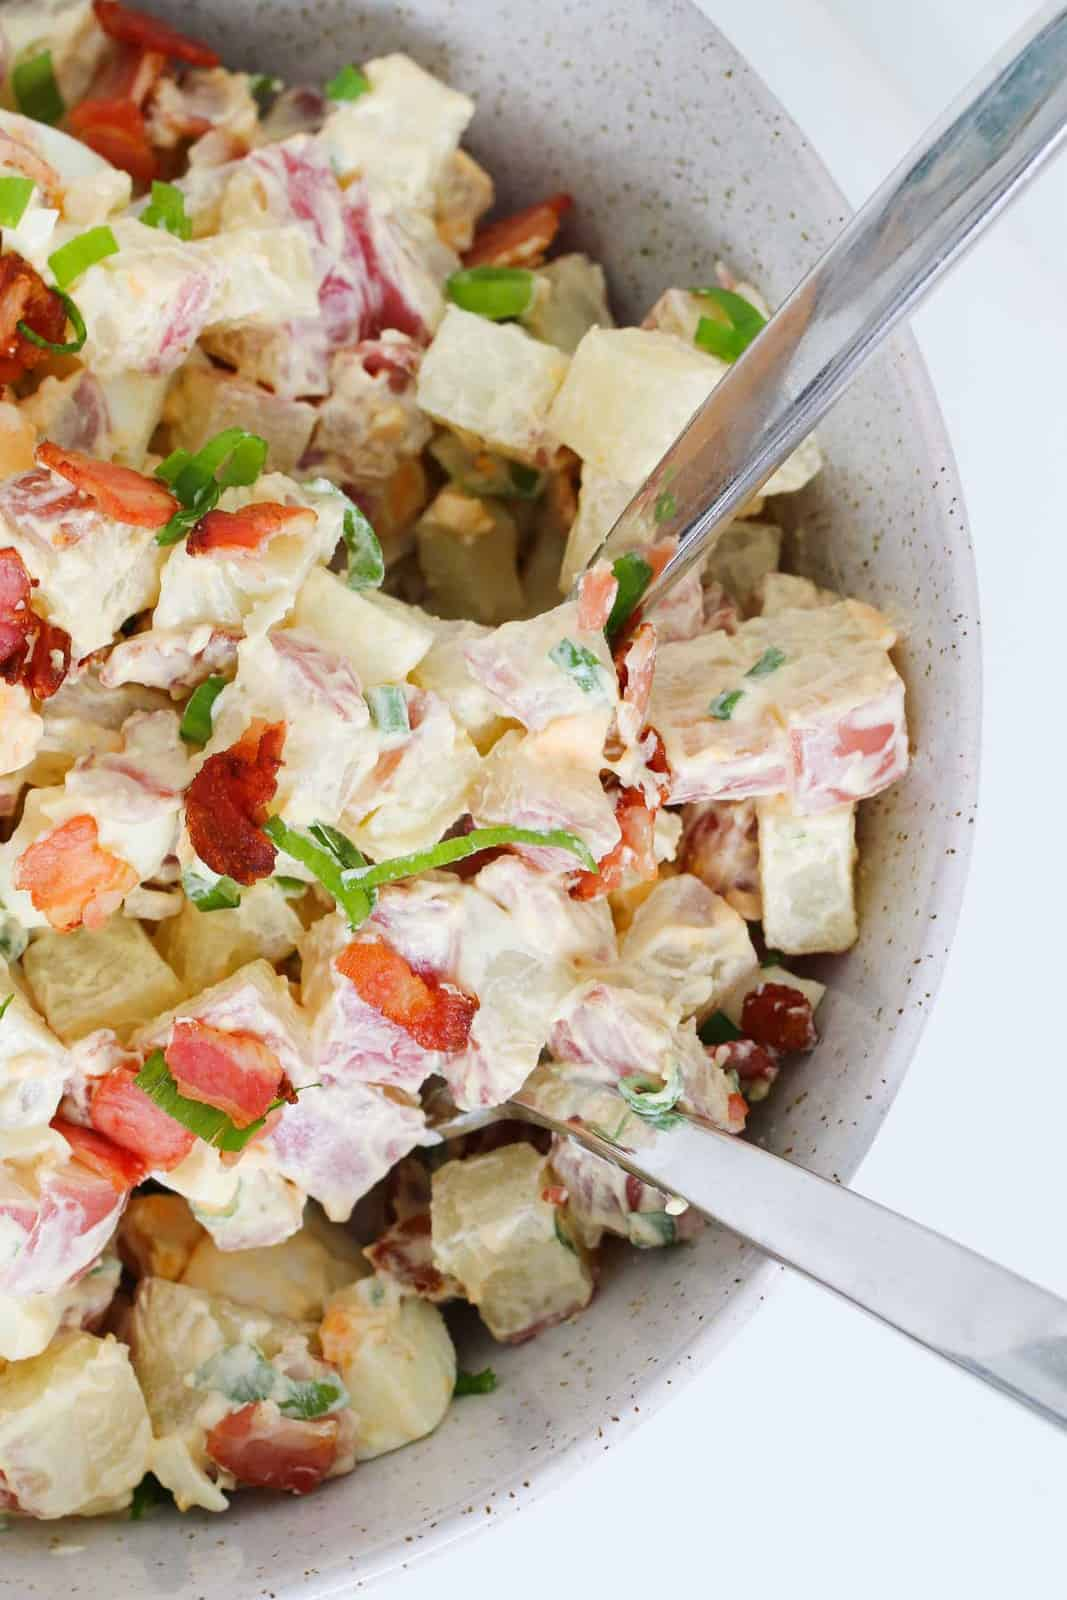 Salad servers in a bowl of potatoes, bacon, eggs, spring onions with a creamy dressing.